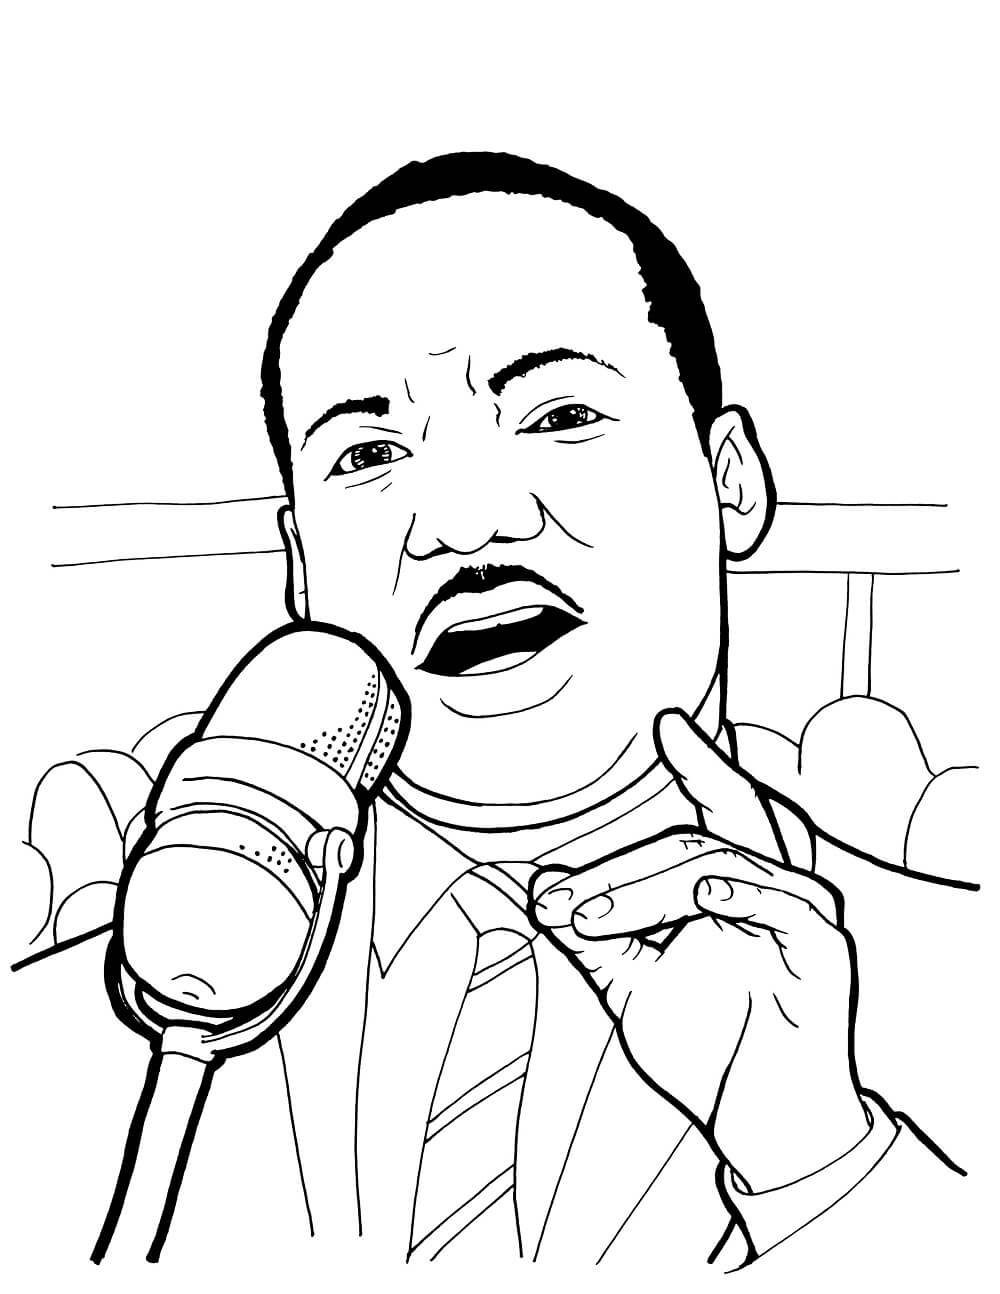 martin luther king jr coloring page martin luther king jr coloring pages realistic coloring coloring martin luther jr king page